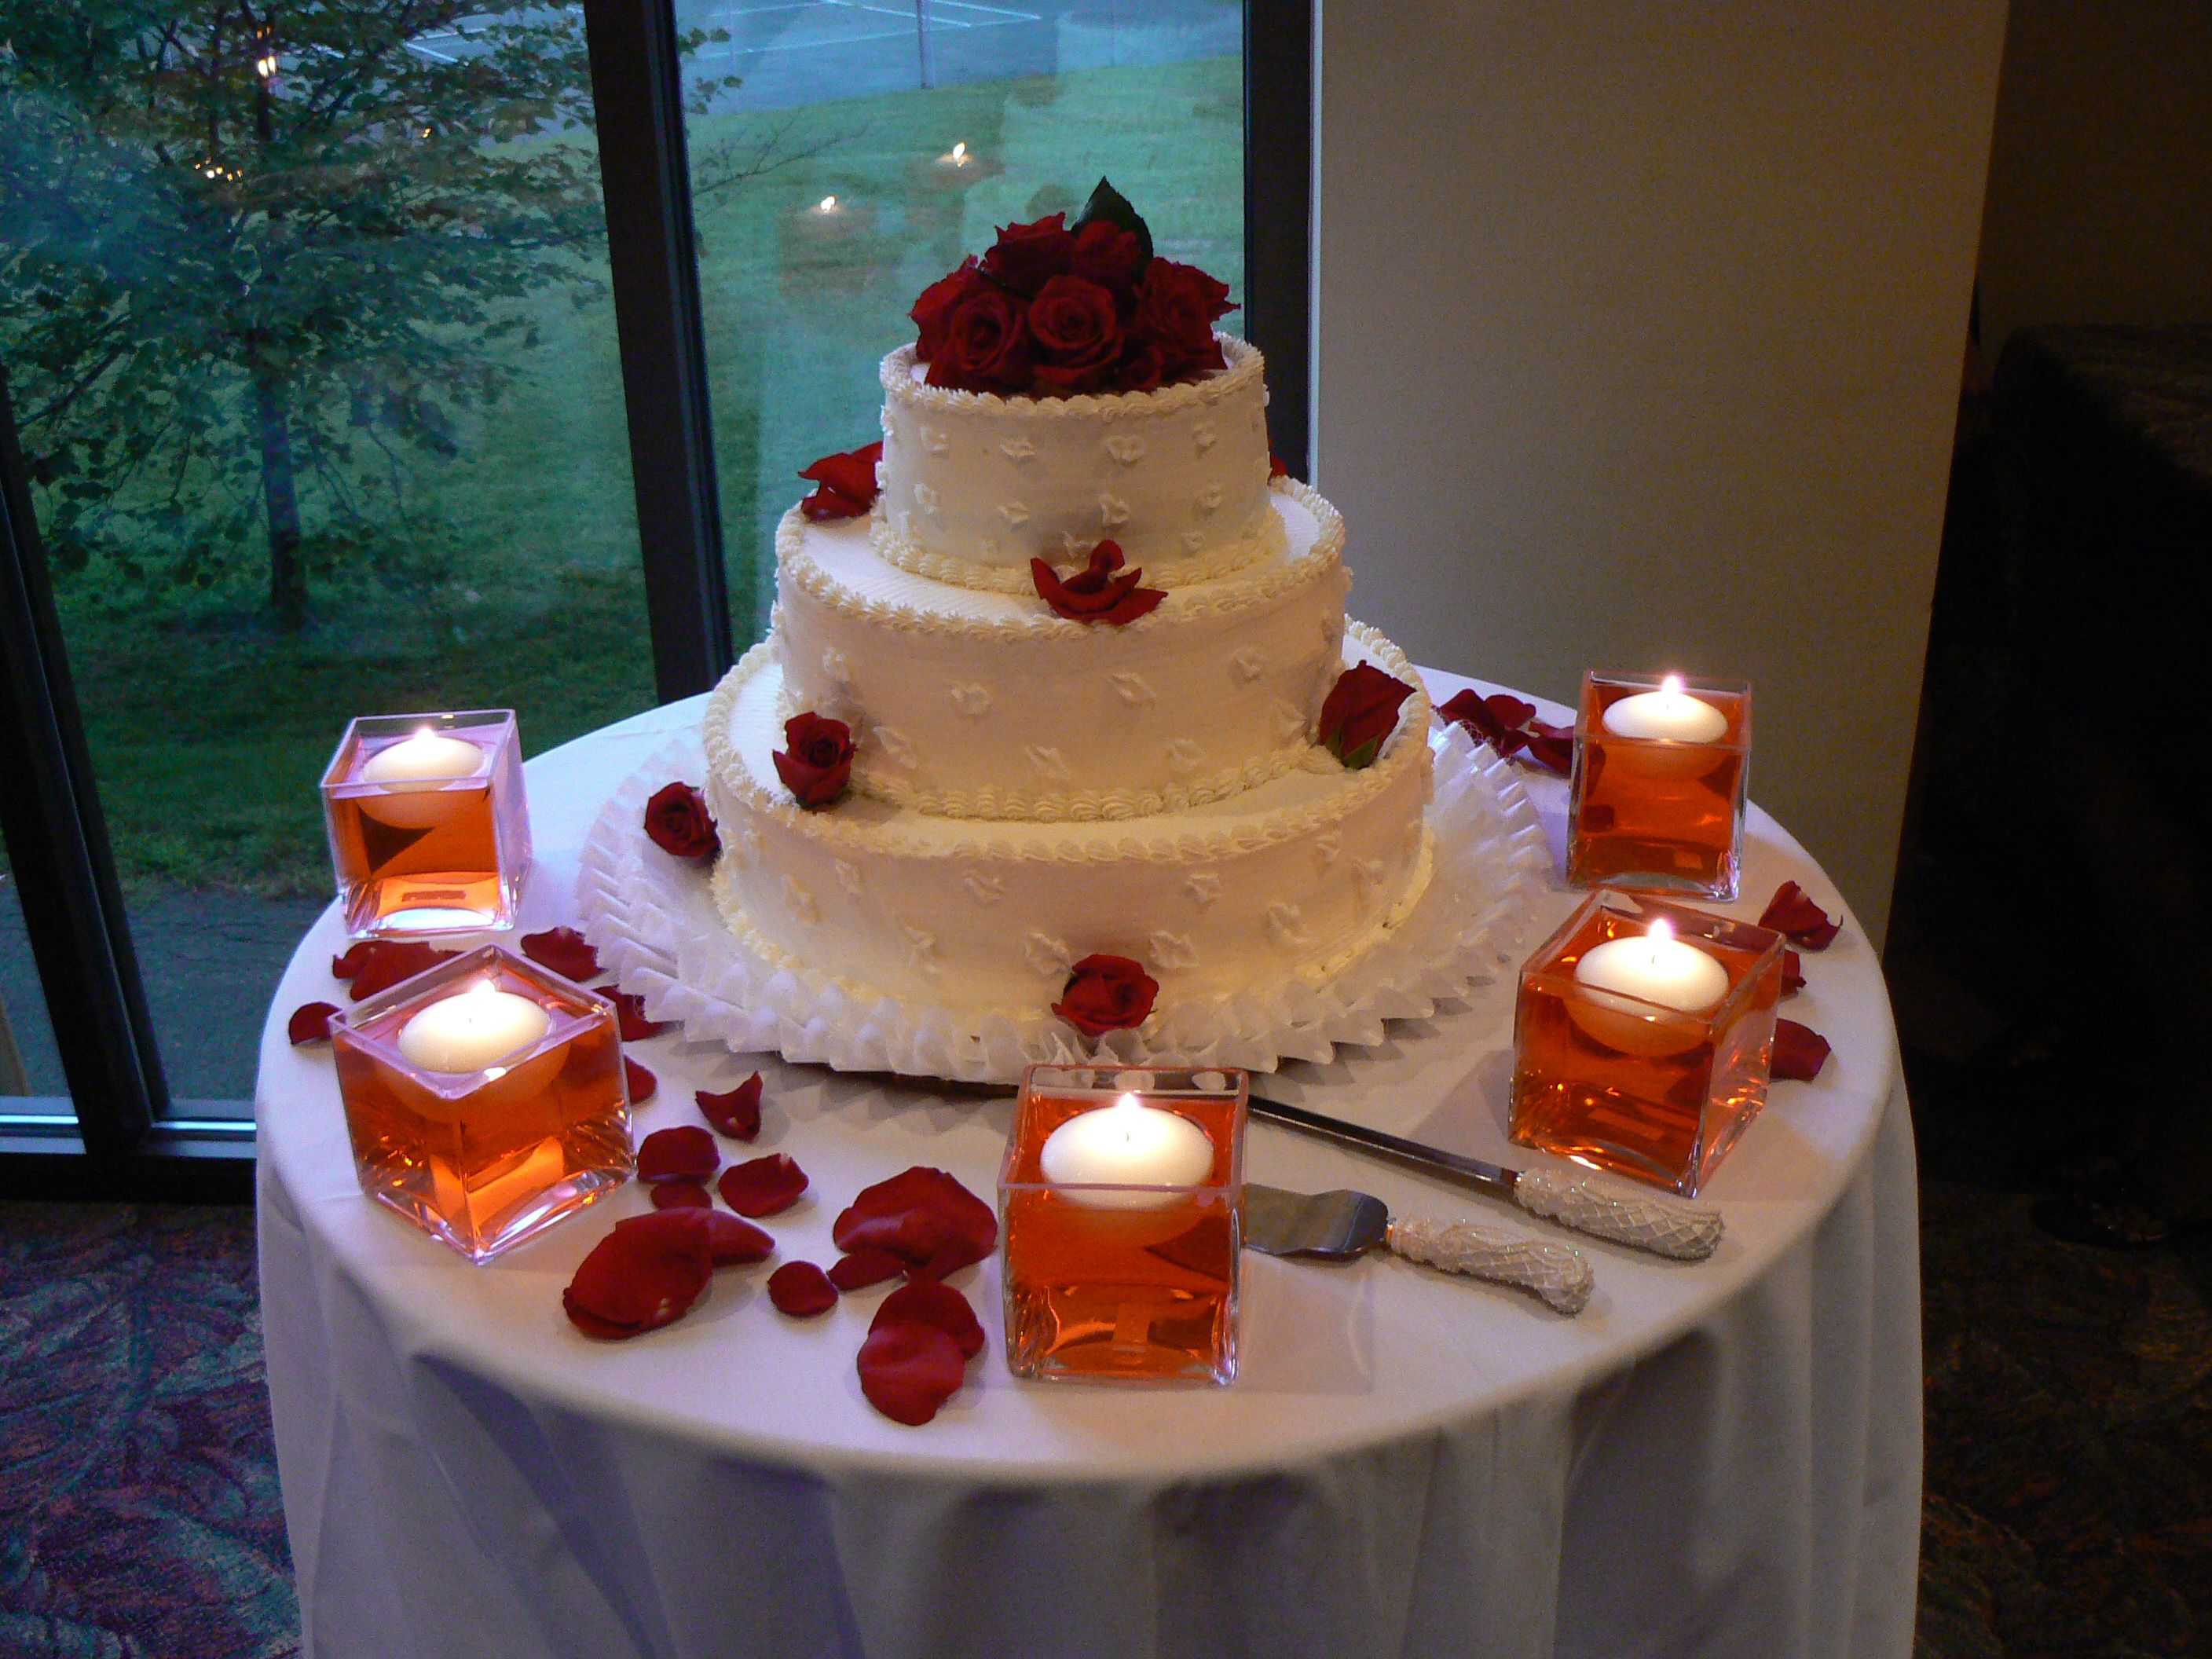 Wedding decorations on cars  surrounded by floating candles in colored water  Wedding Cakes